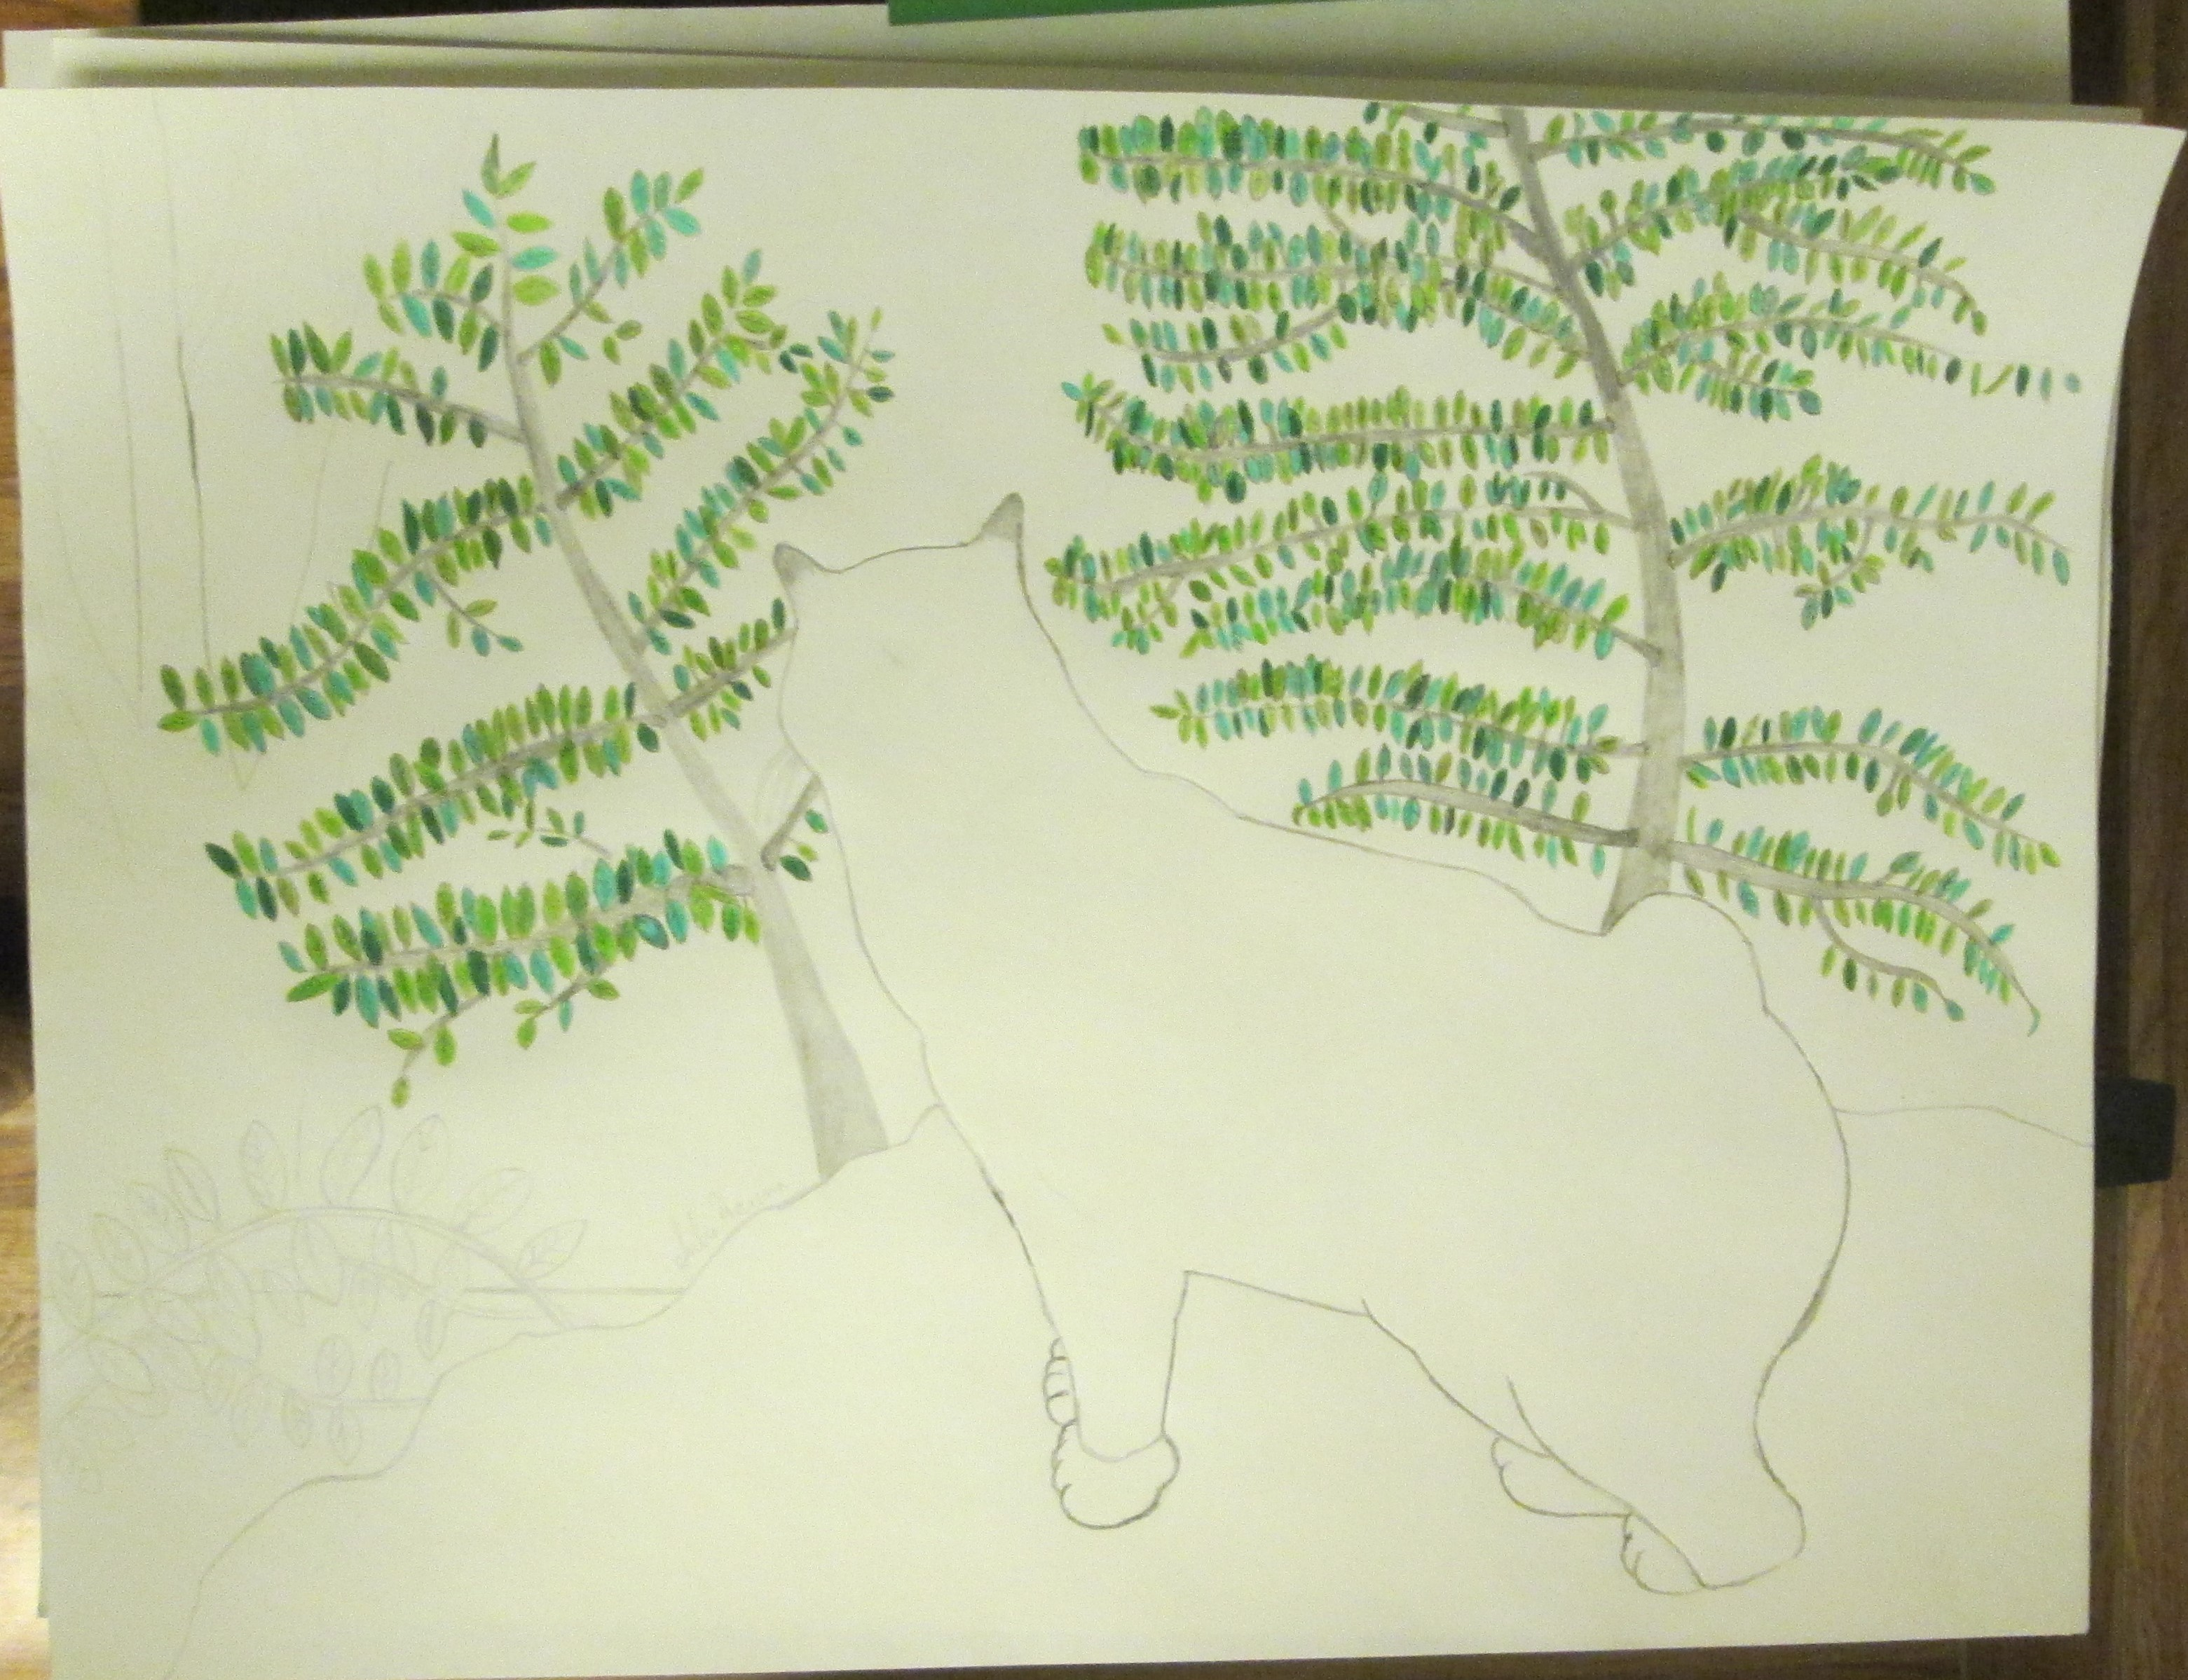 I am at the half-way point of the drawing.  The scrub oak trees have almost all shaded in.